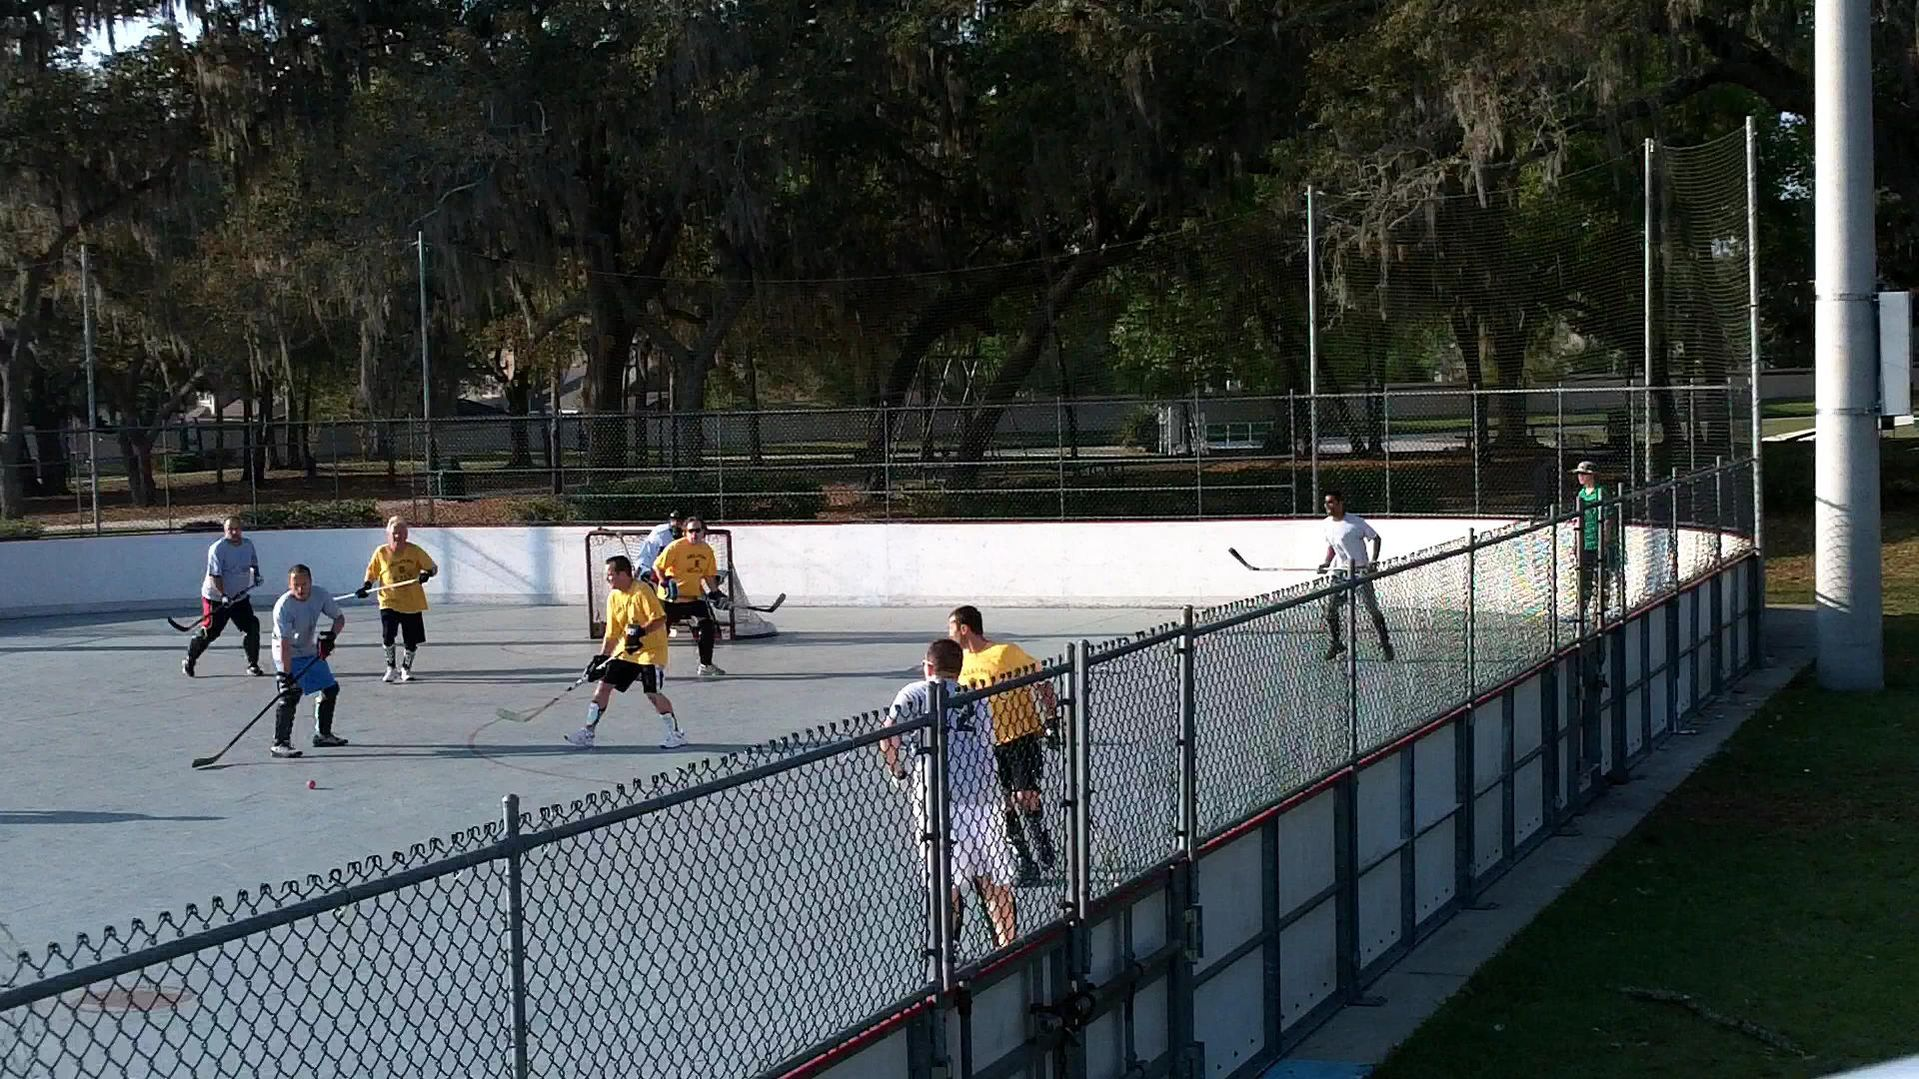 Street hockey - The complete information and online sale